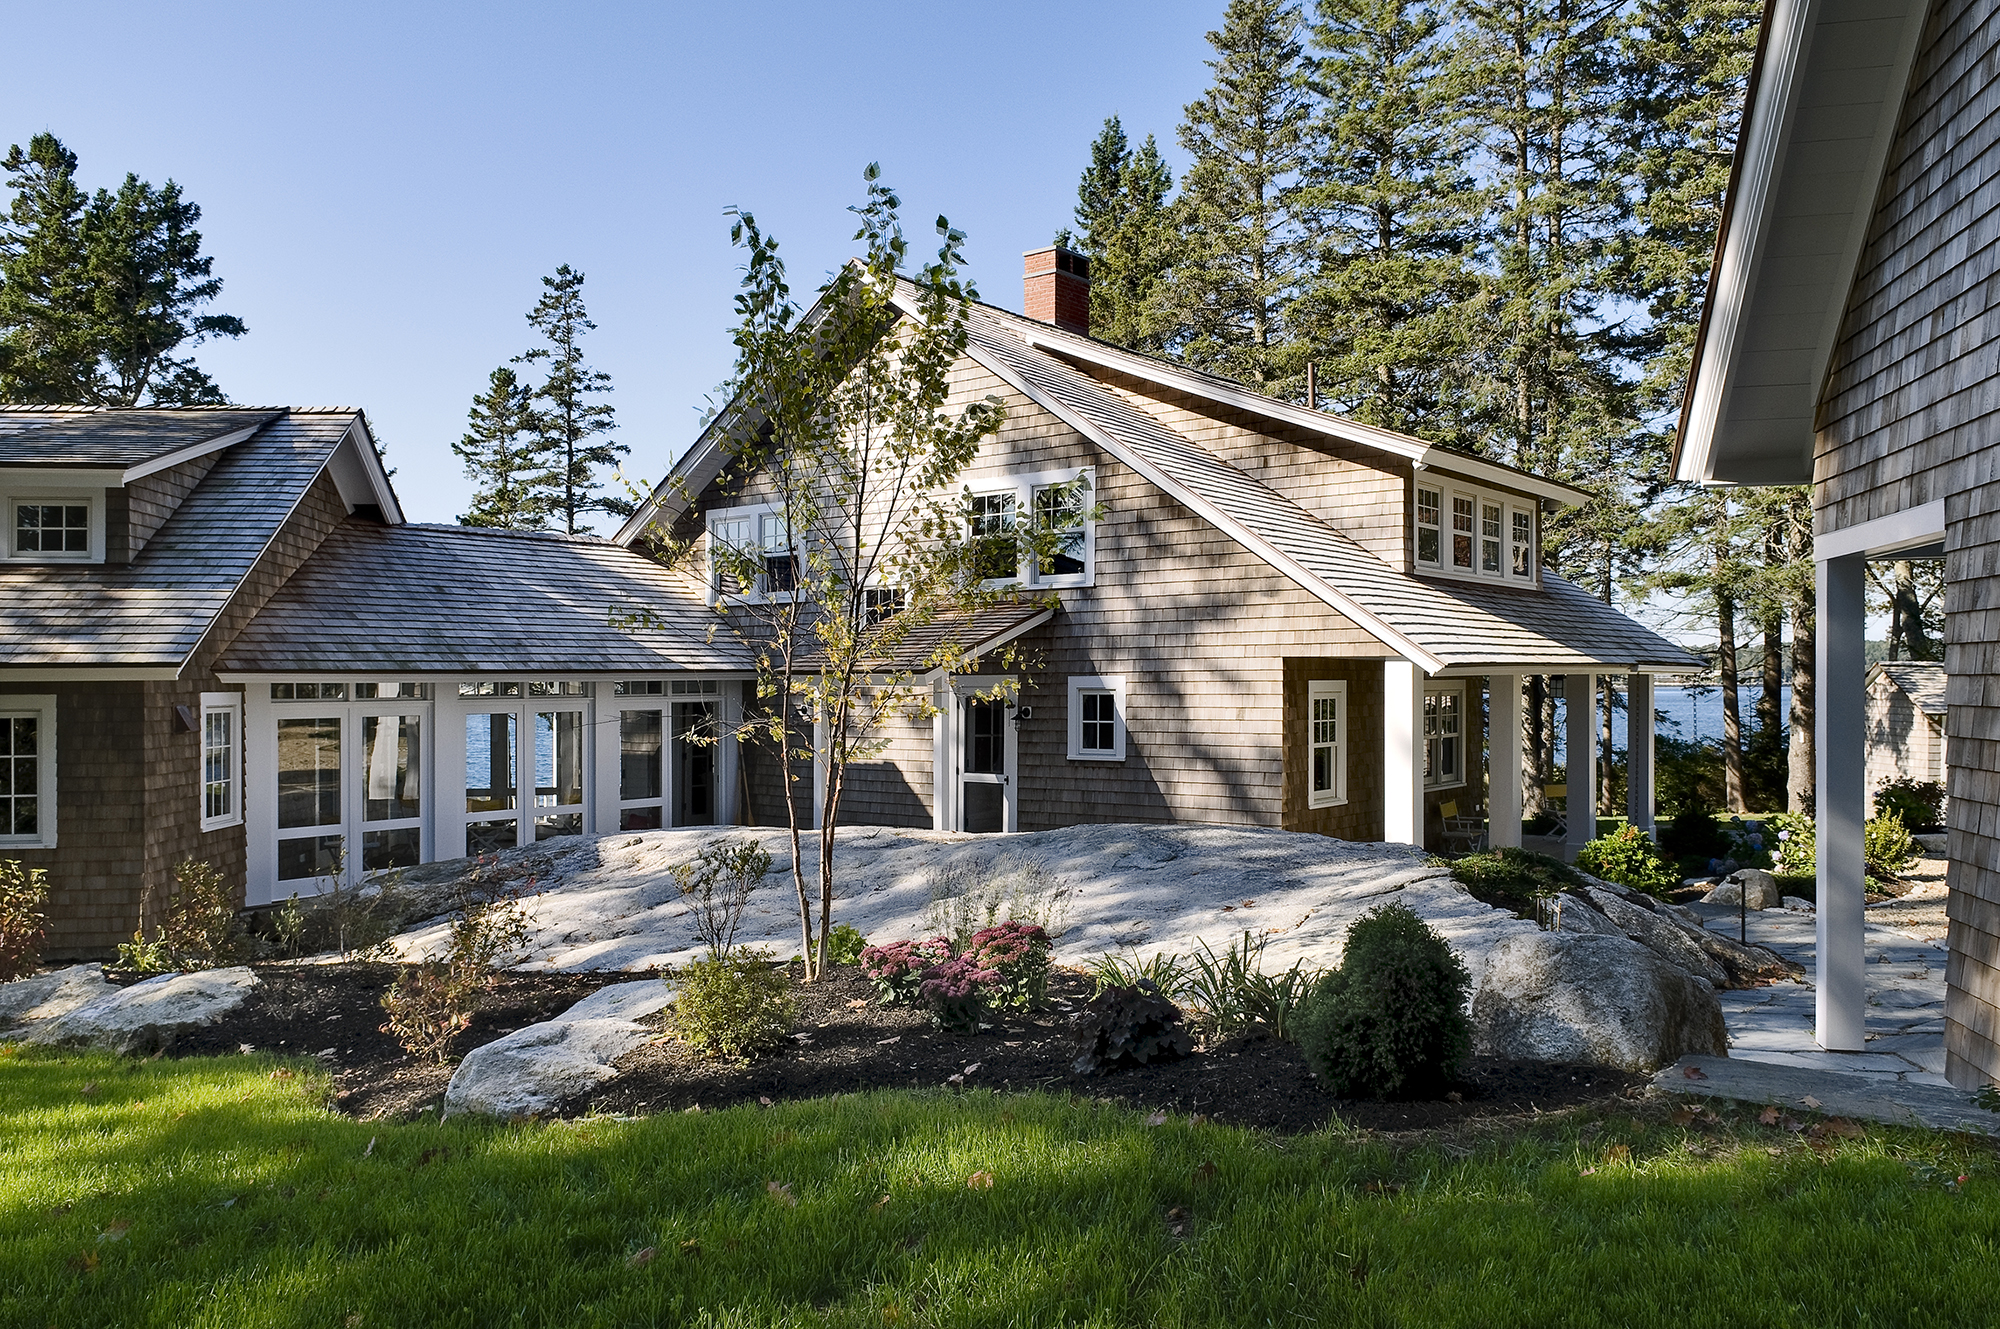 knickerbocker-group-project-grandview-whitten-cottage-maine-coastal-home